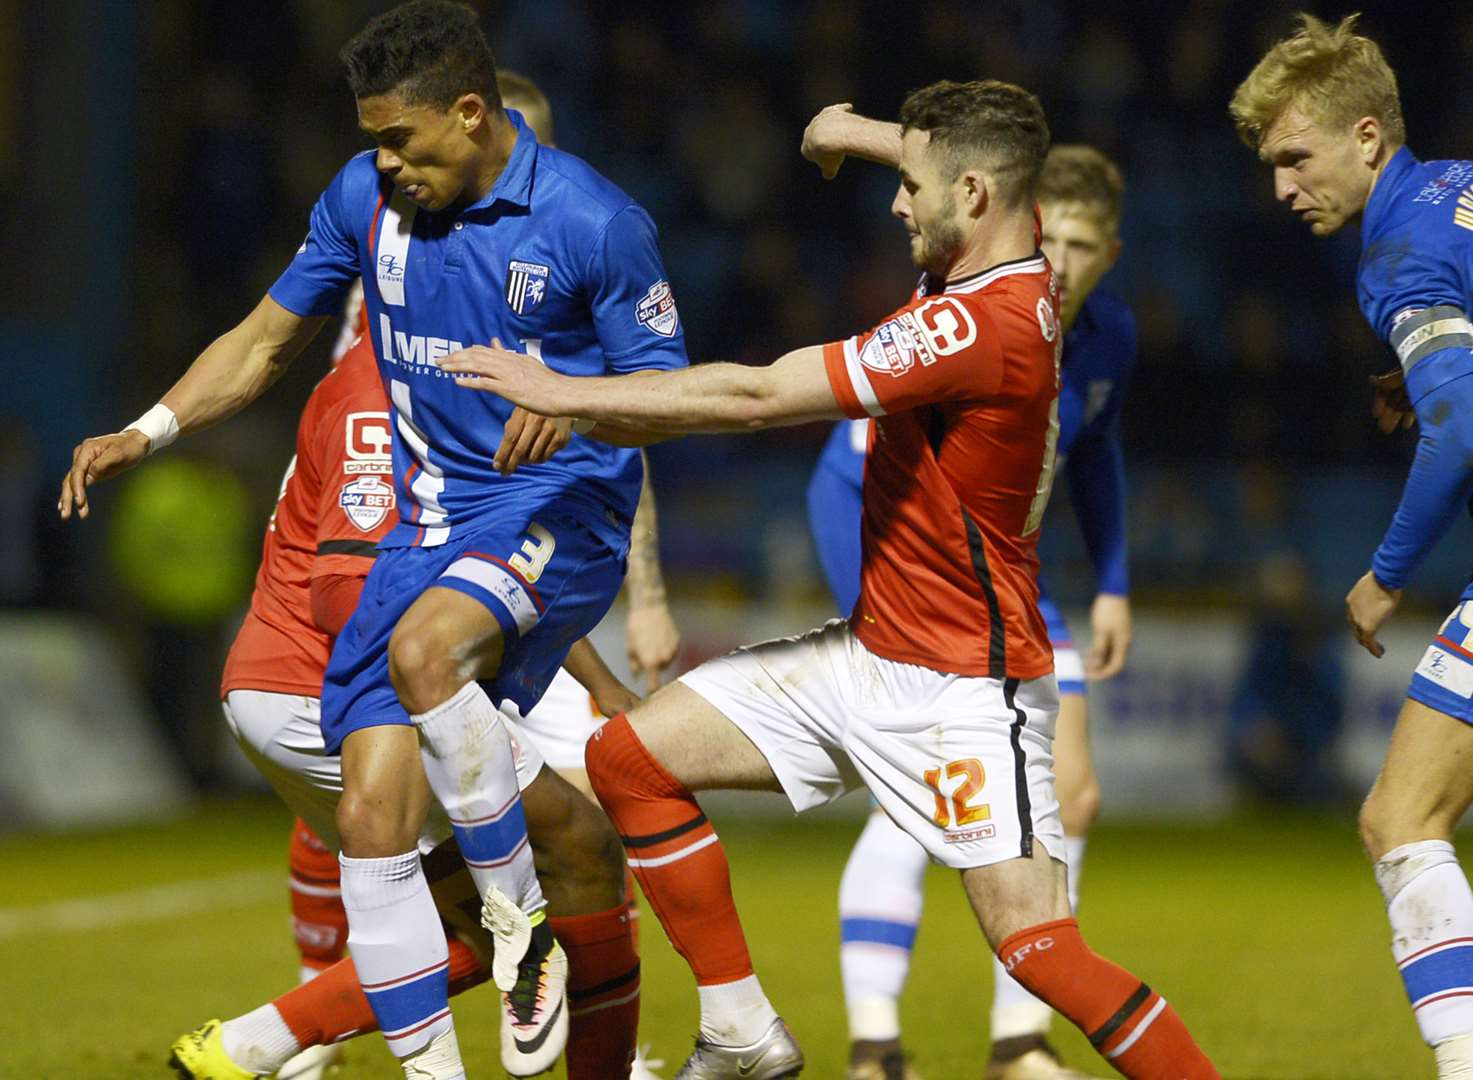 Gillingham v Walsall - in pictures